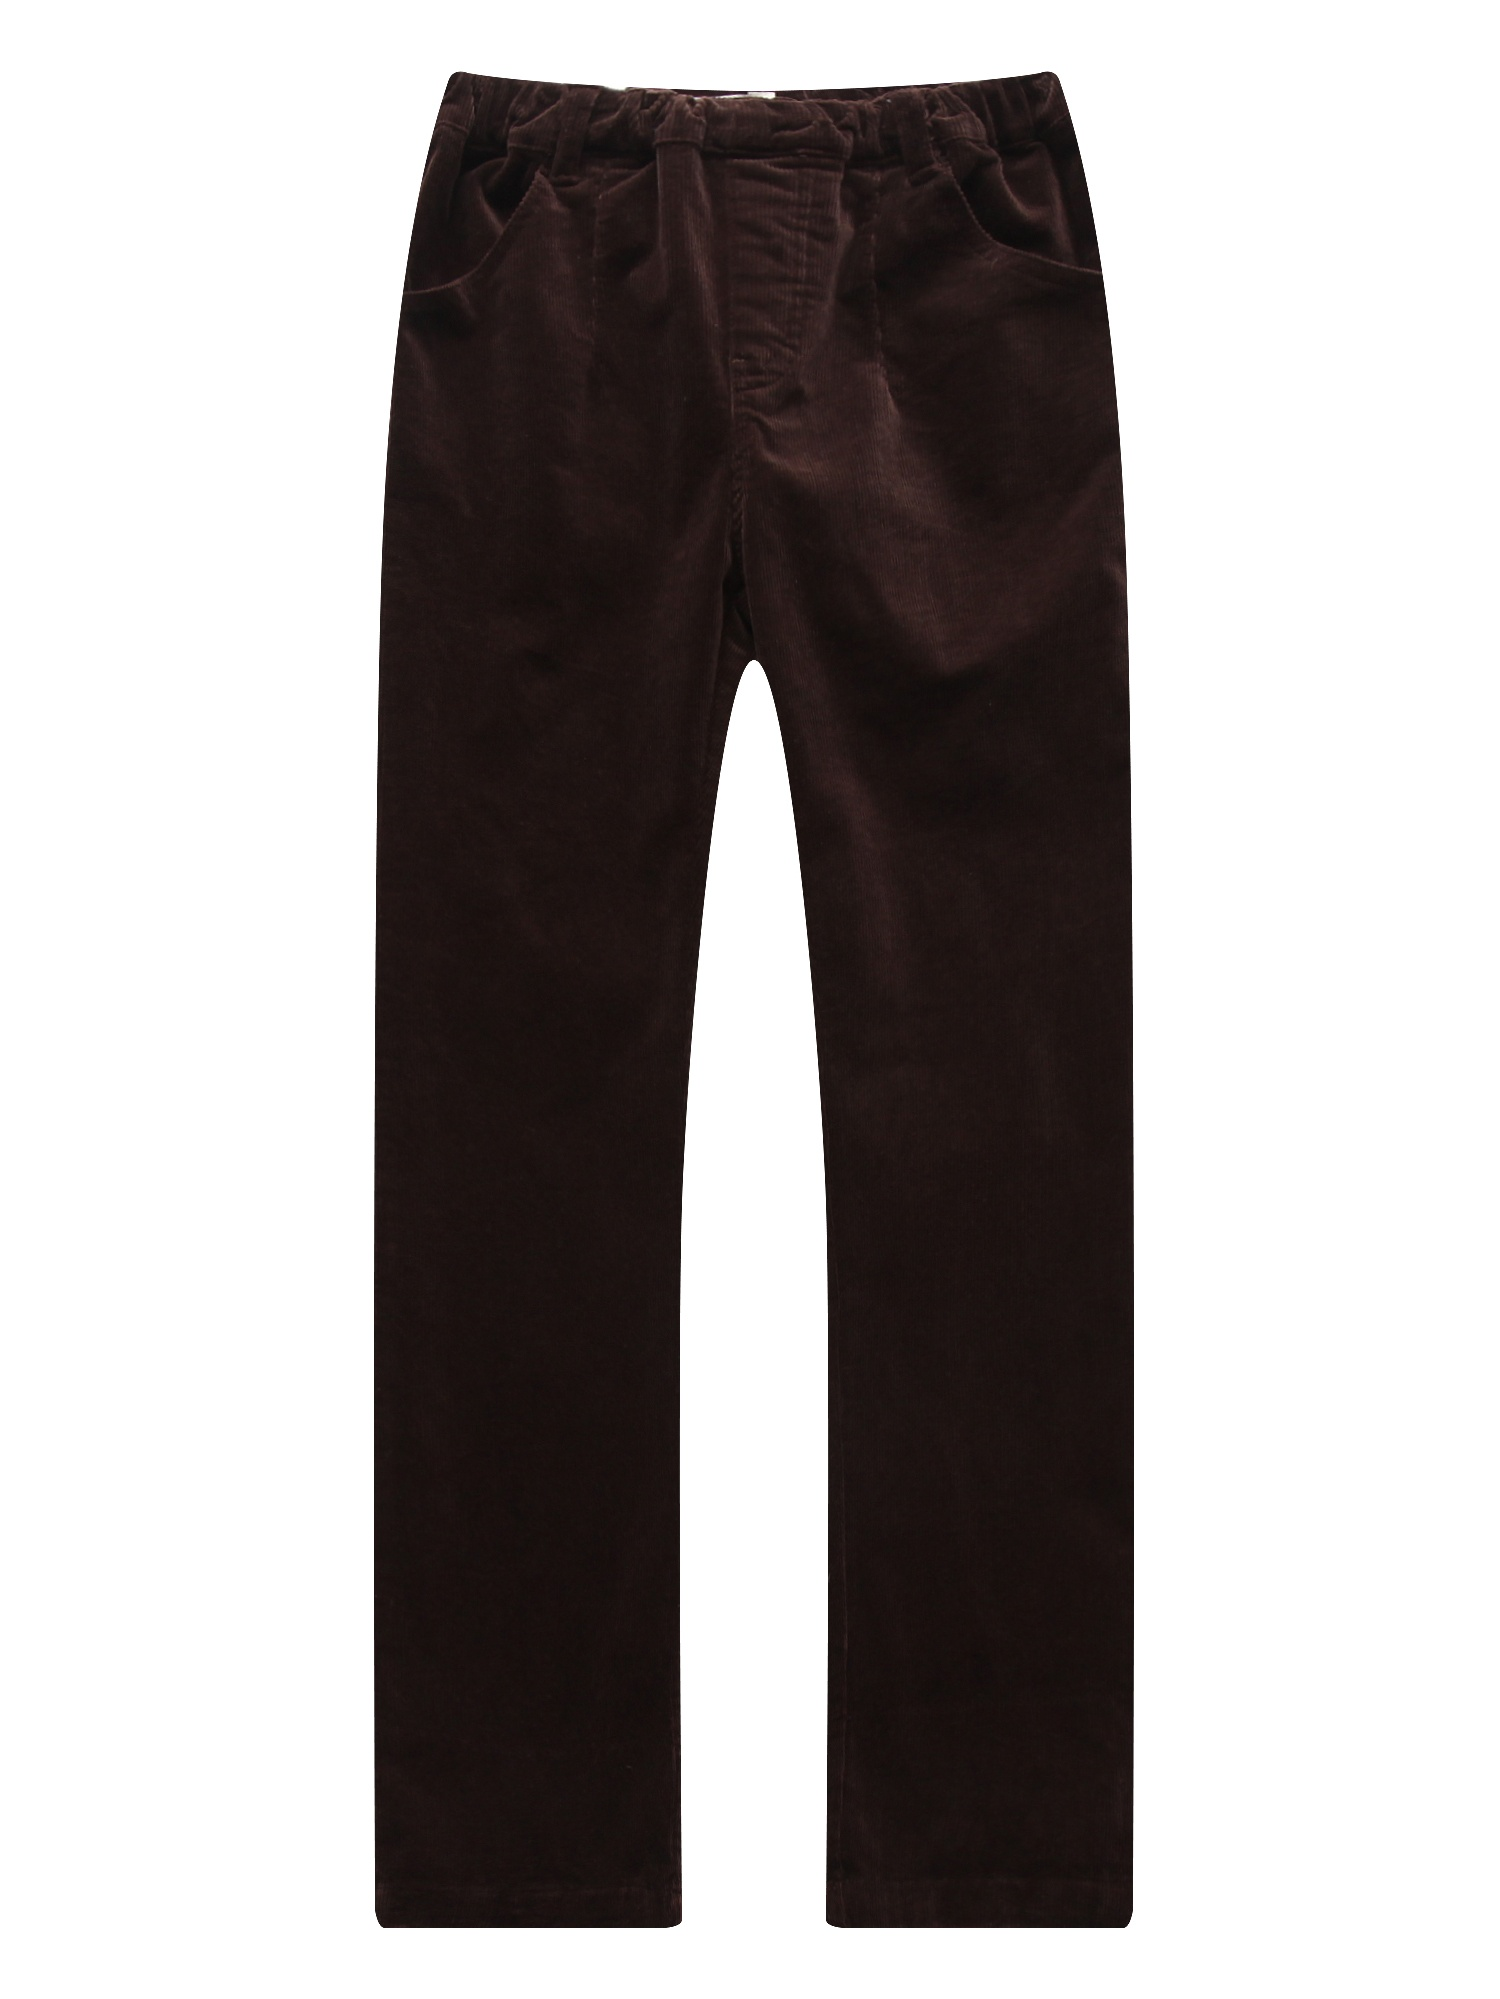 Richie House Boys' Corduroy Pants RH0702